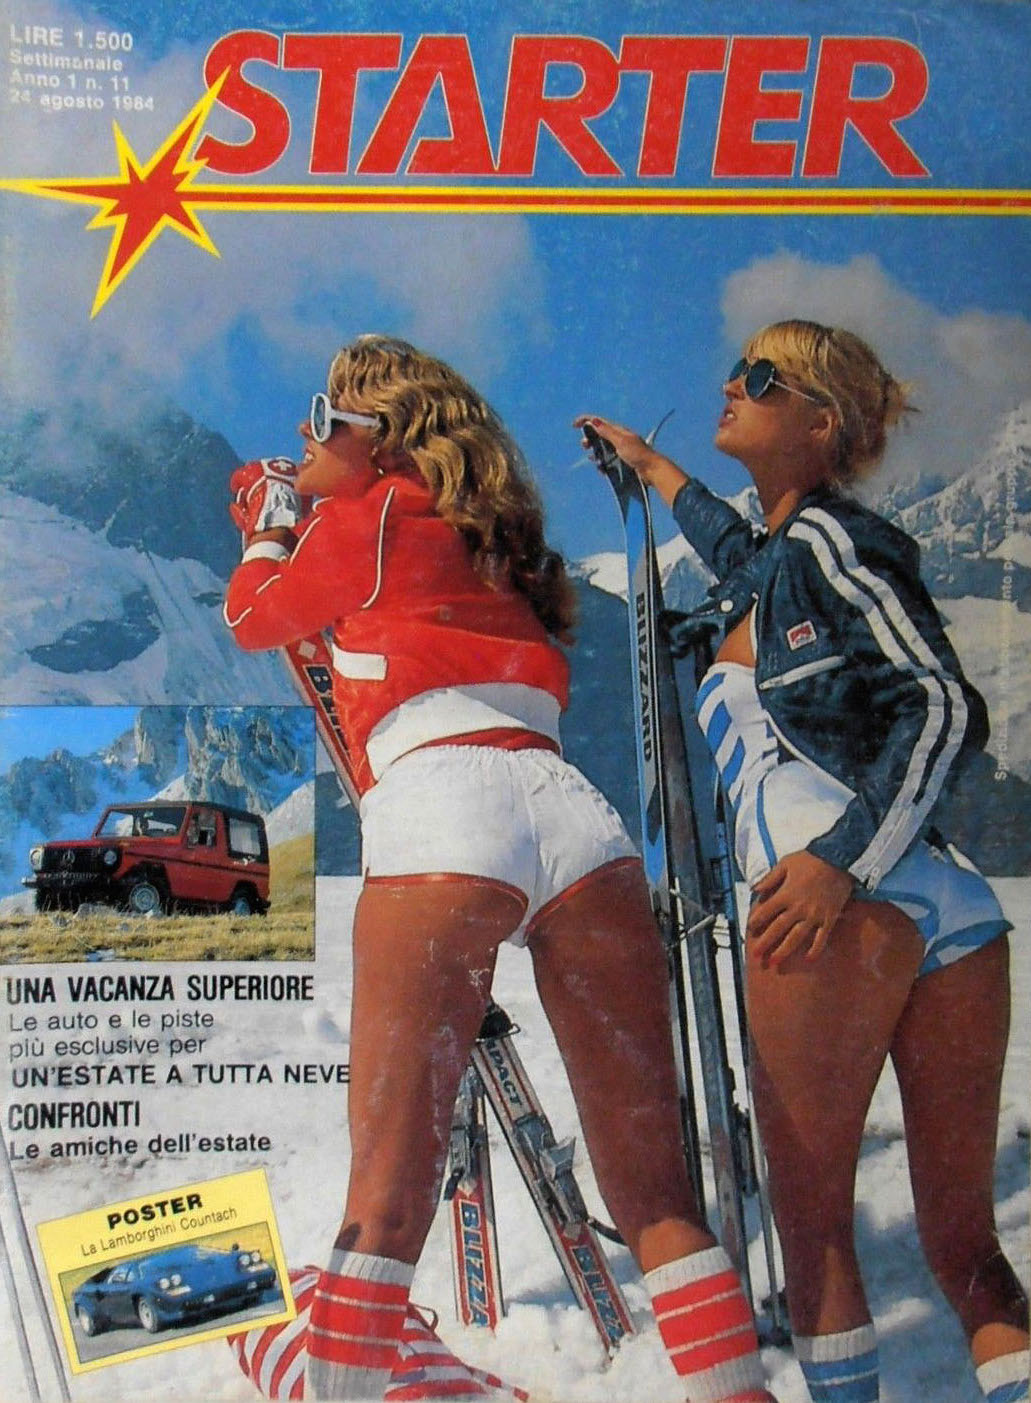 super hot ski babes ski bunnies in white short shorts european